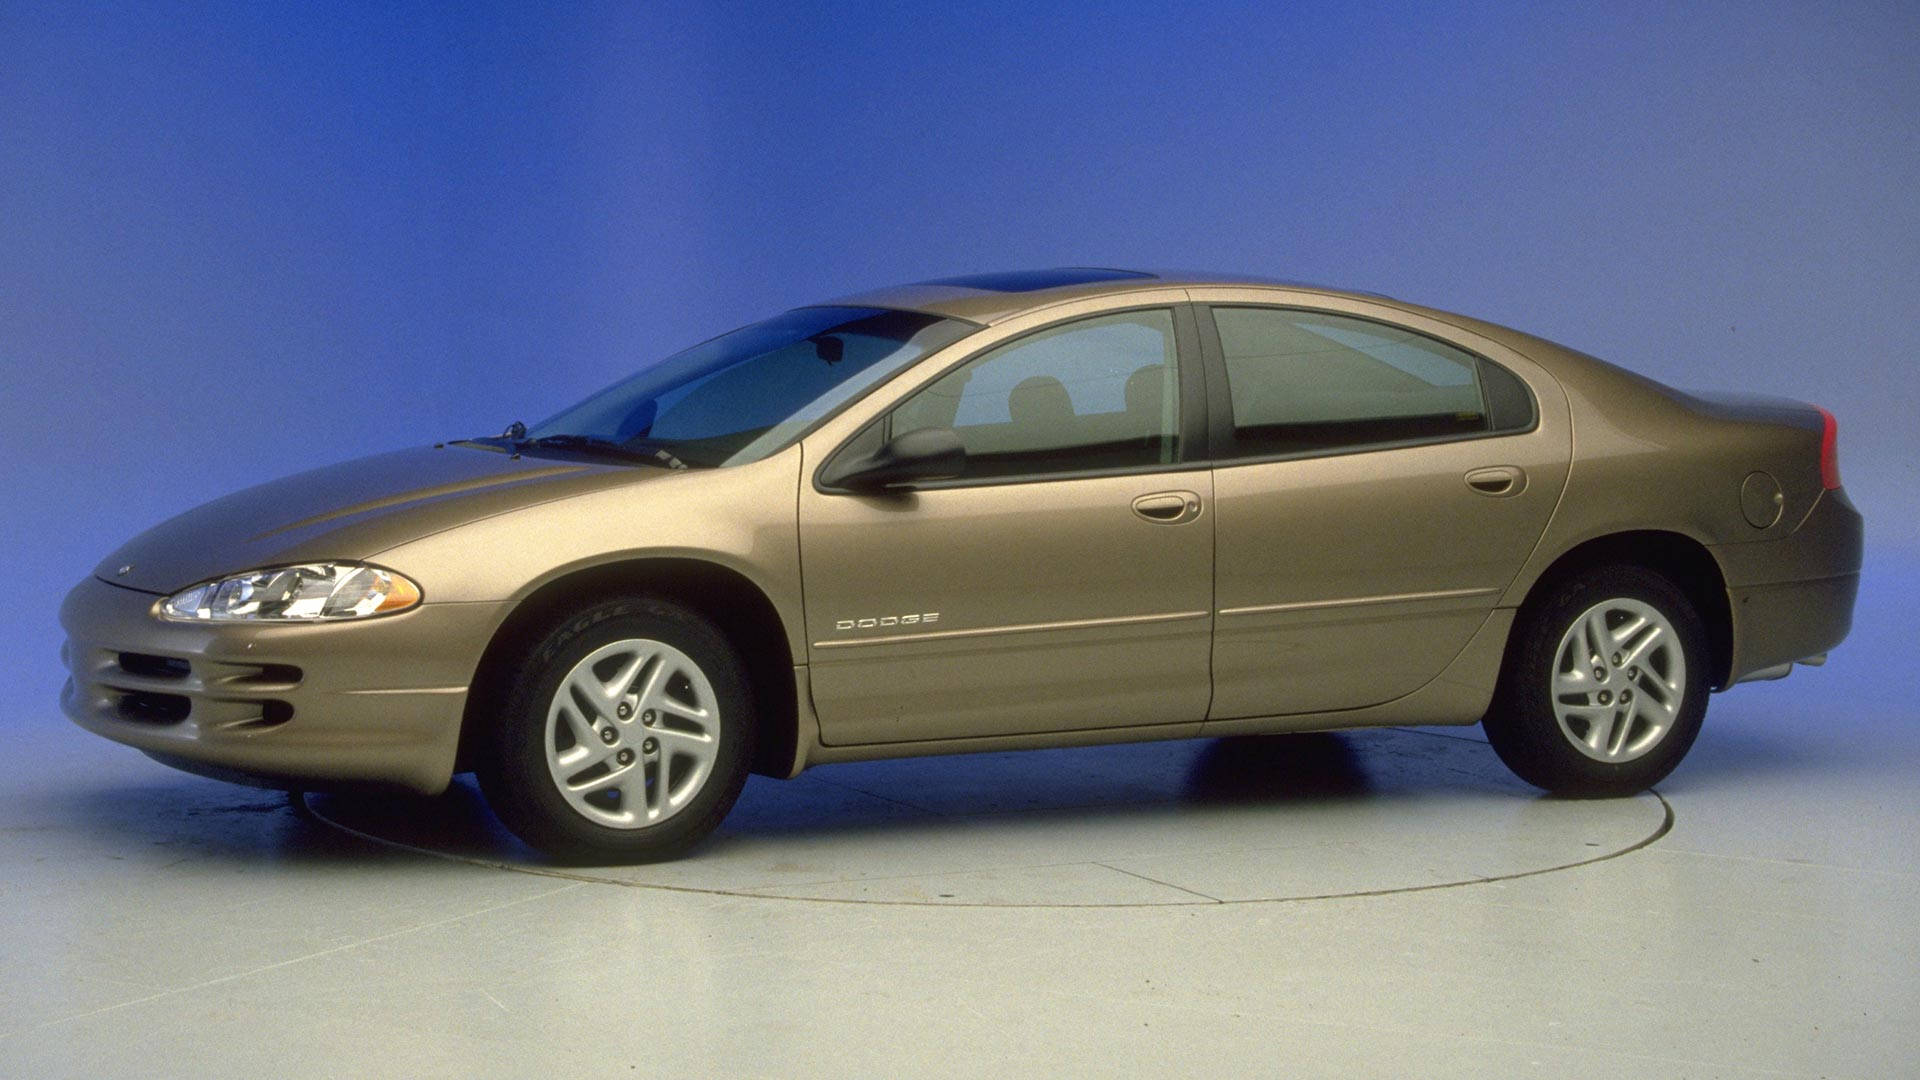 2000 Dodge Intrepid 4-door sedan